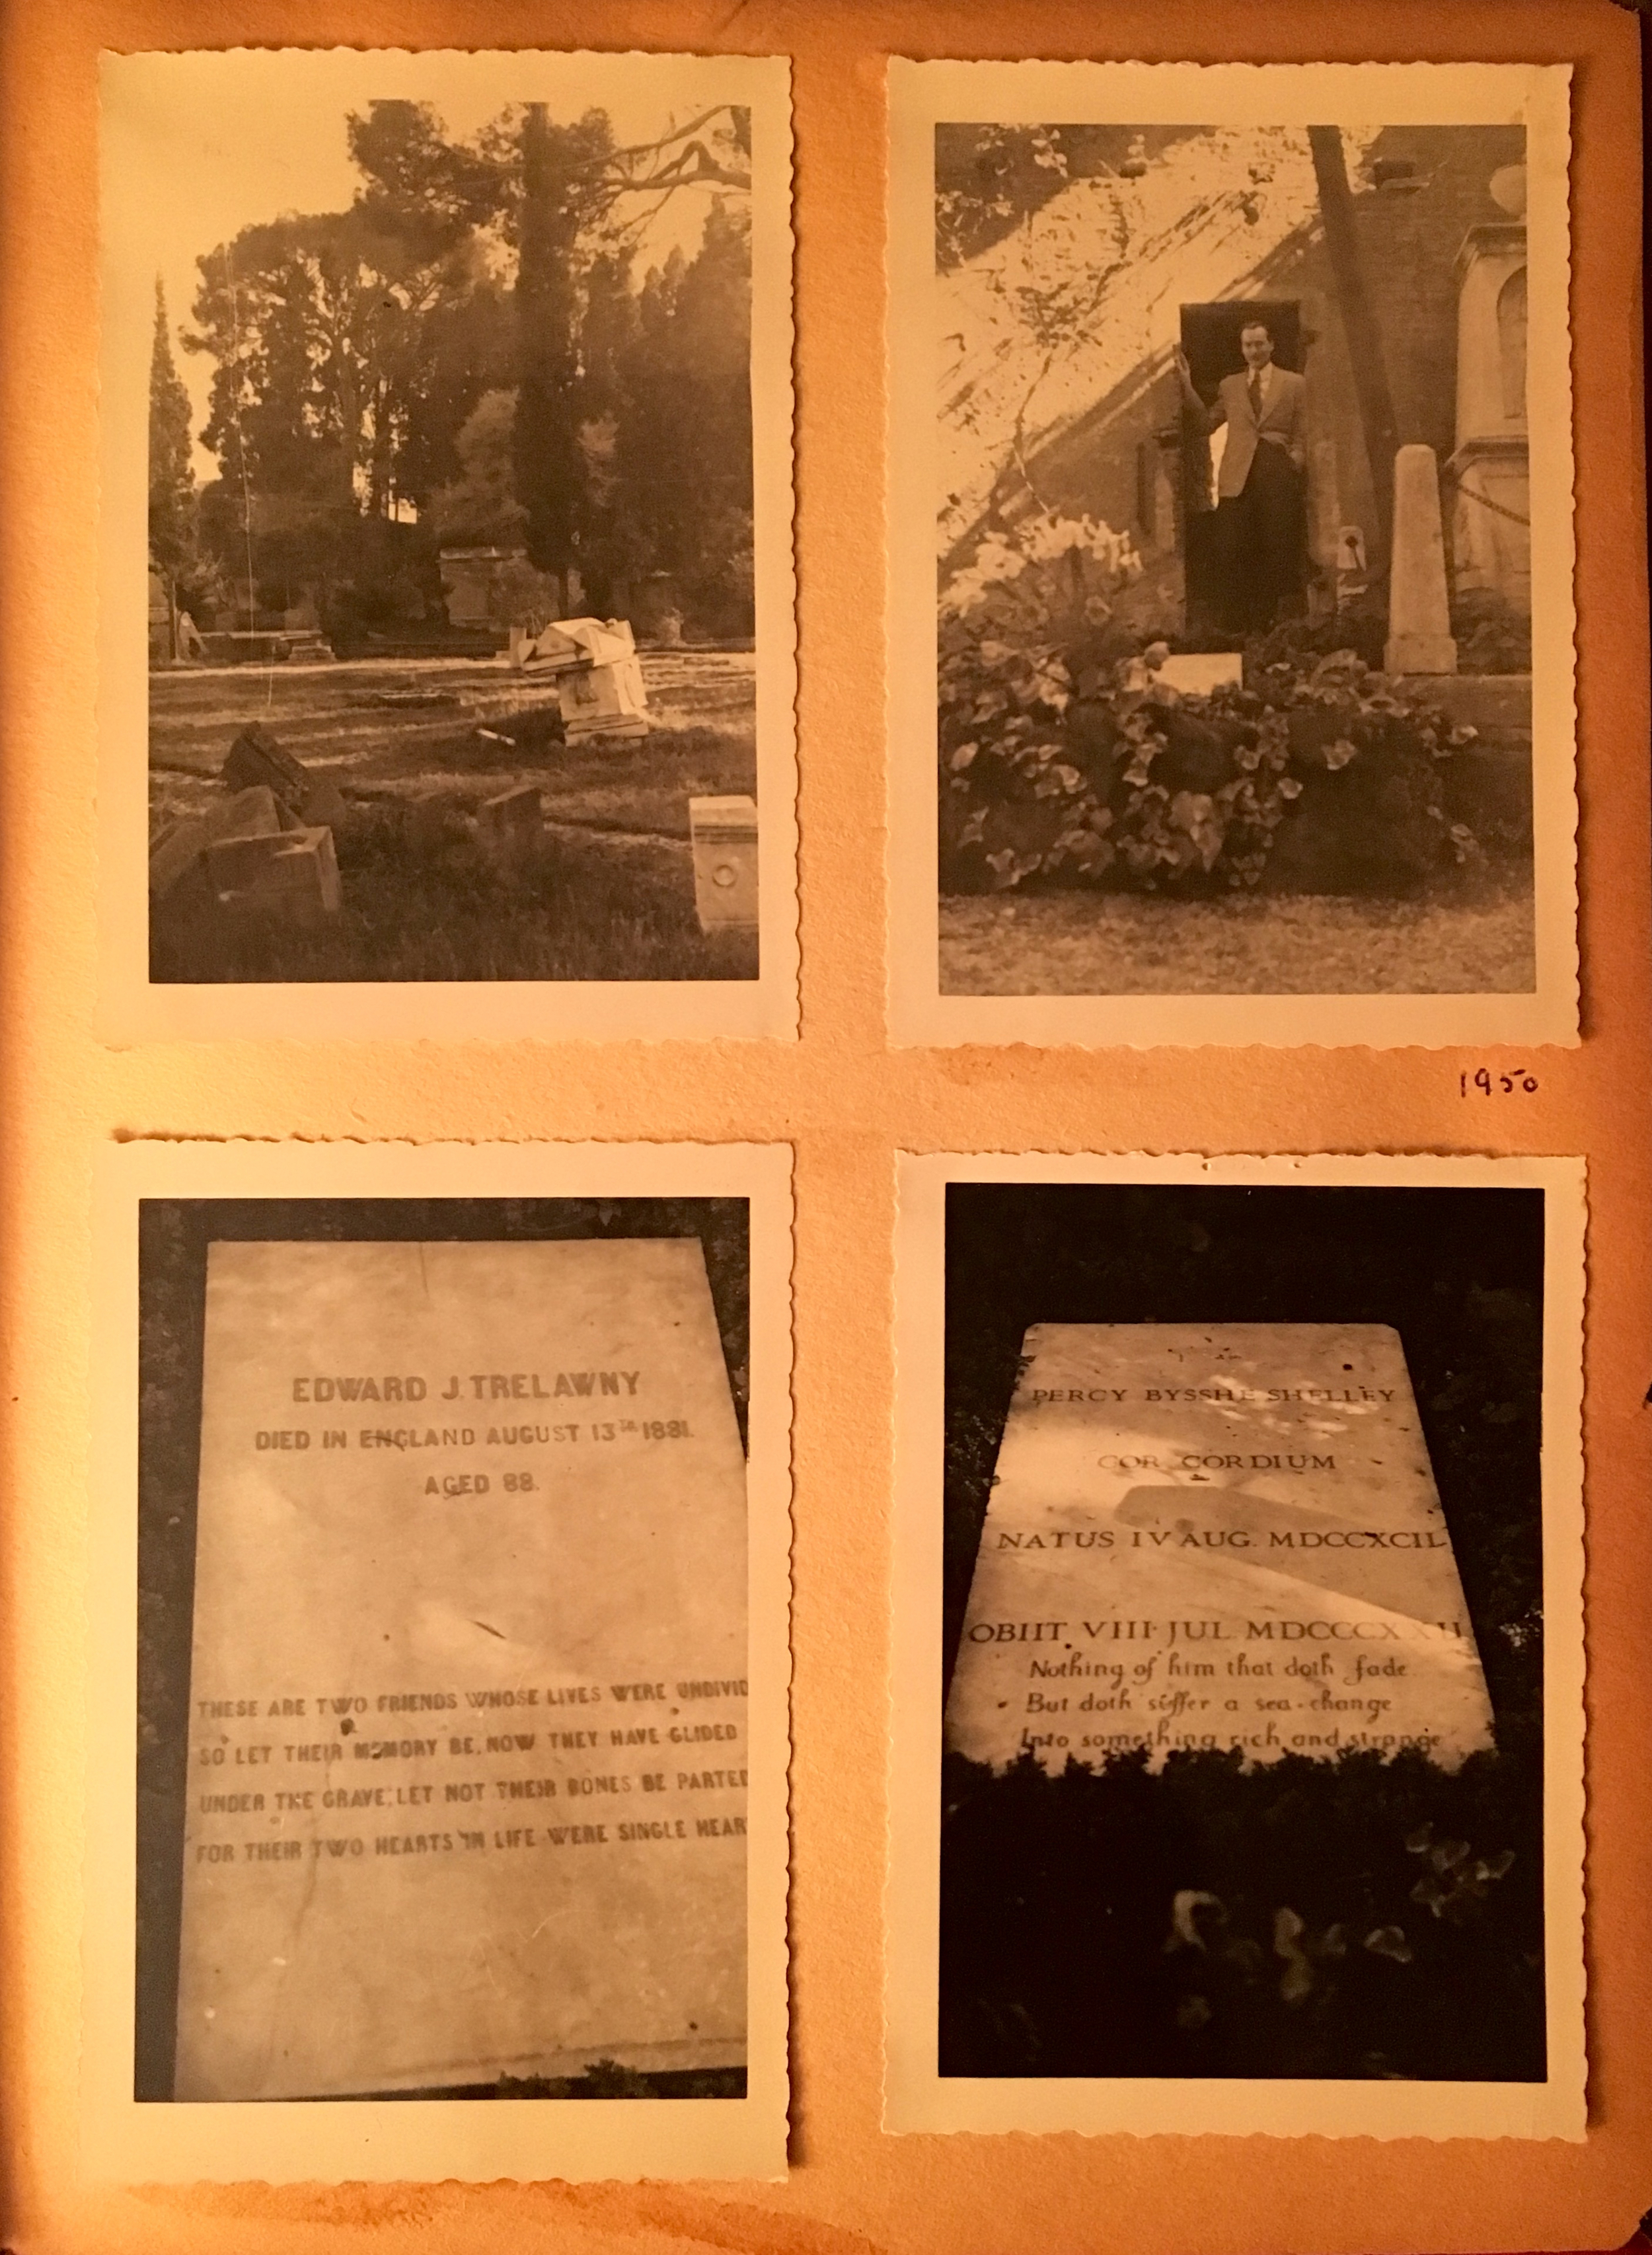 Upper right, Keats' tomb. Lower left, Trelawny, lower right, Shelley, Photographs 1950